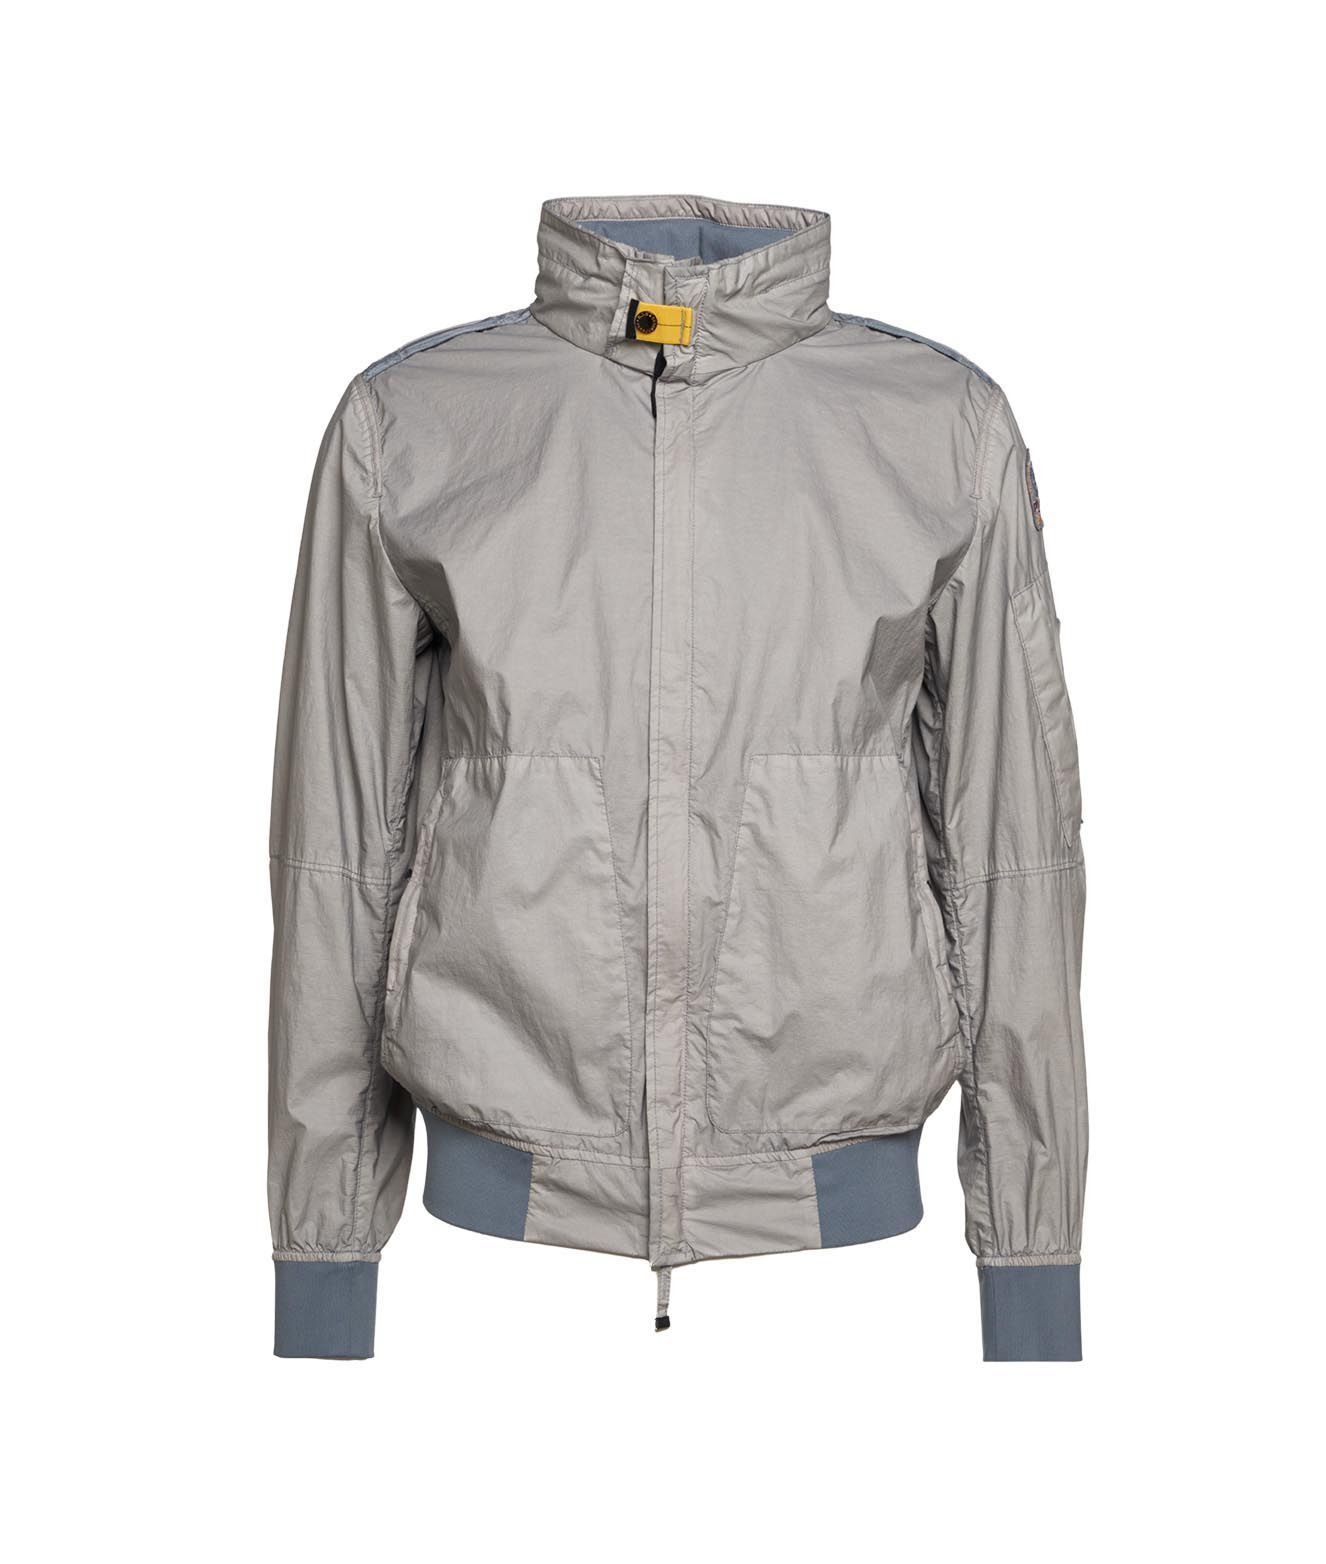 Parajumpers Linings PARAJUMPERS MEN'S PMJCKOS01P0211669 GREY OTHER MATERIALS JACKET